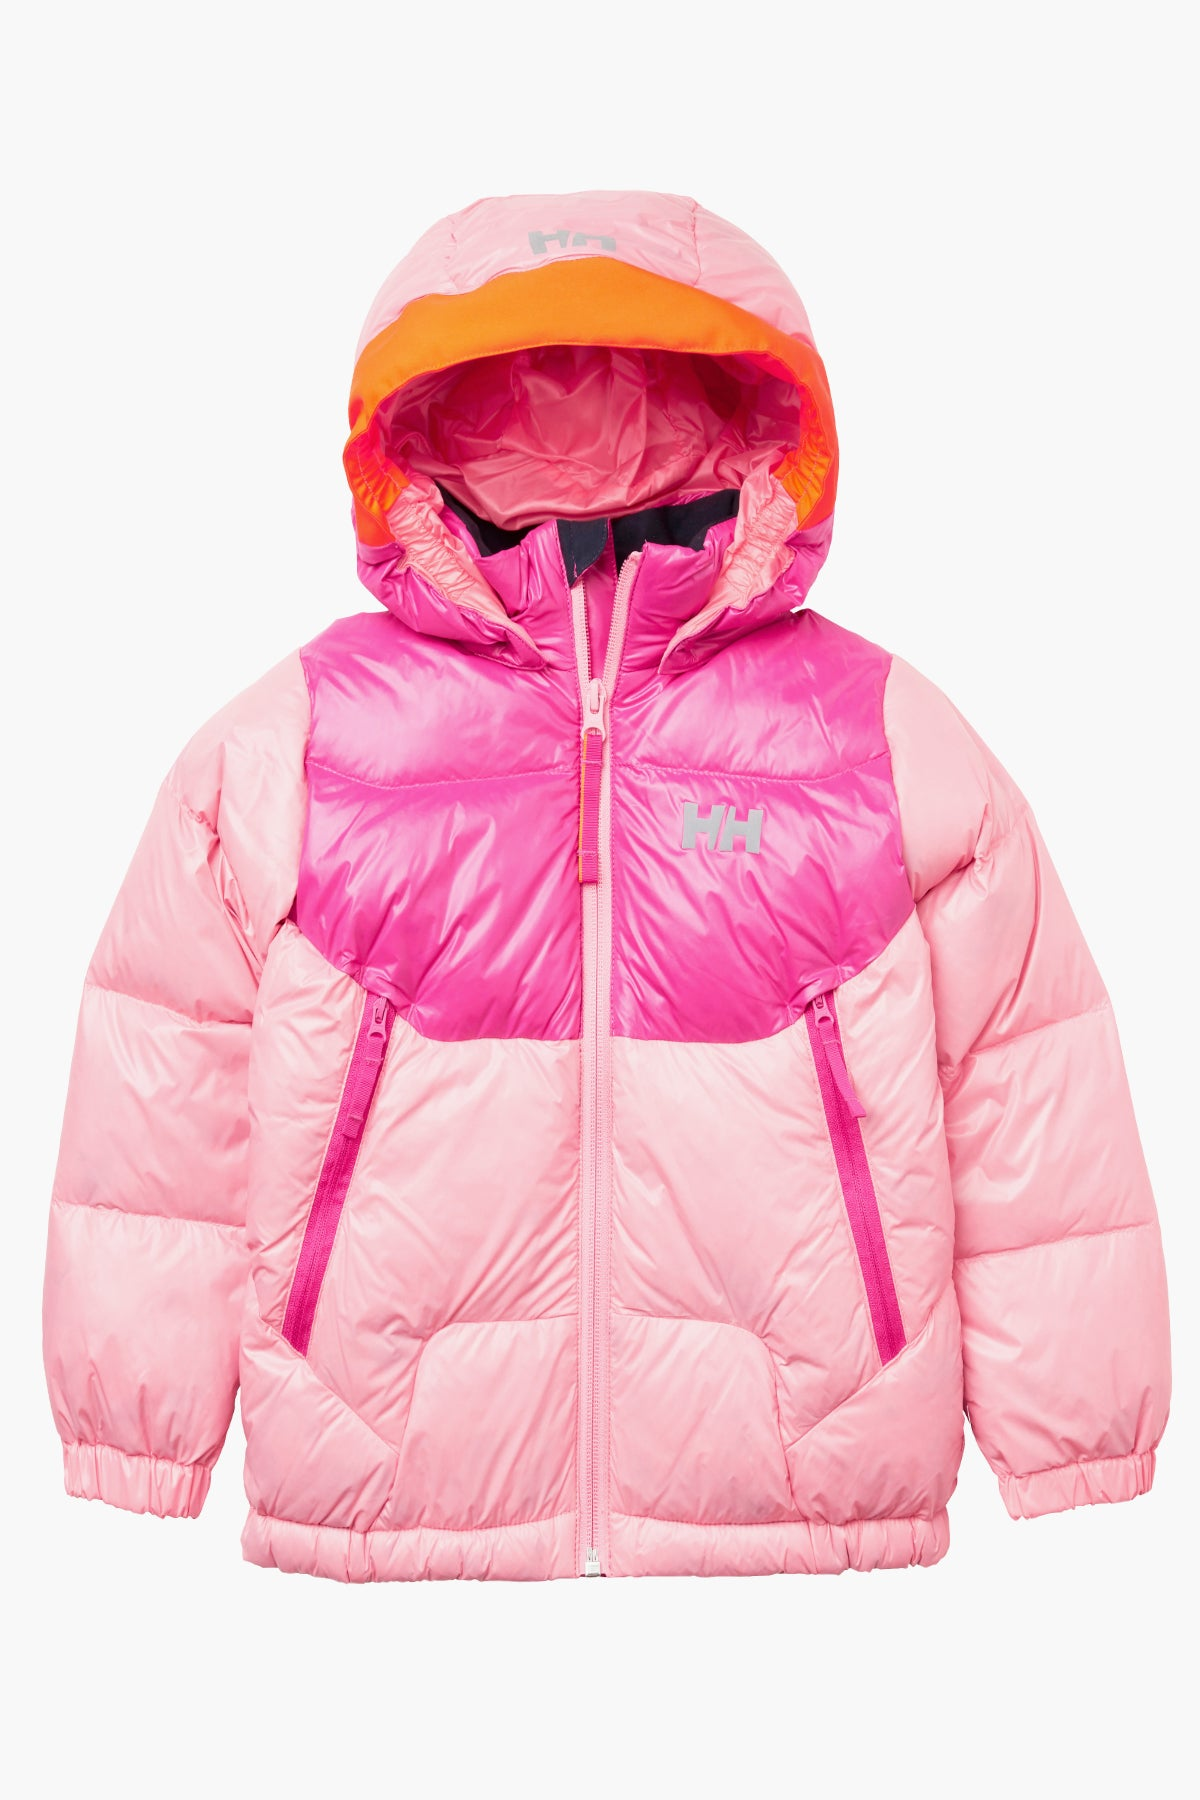 Helly Hansen Frost Down Girls Jacket - Conch Shell